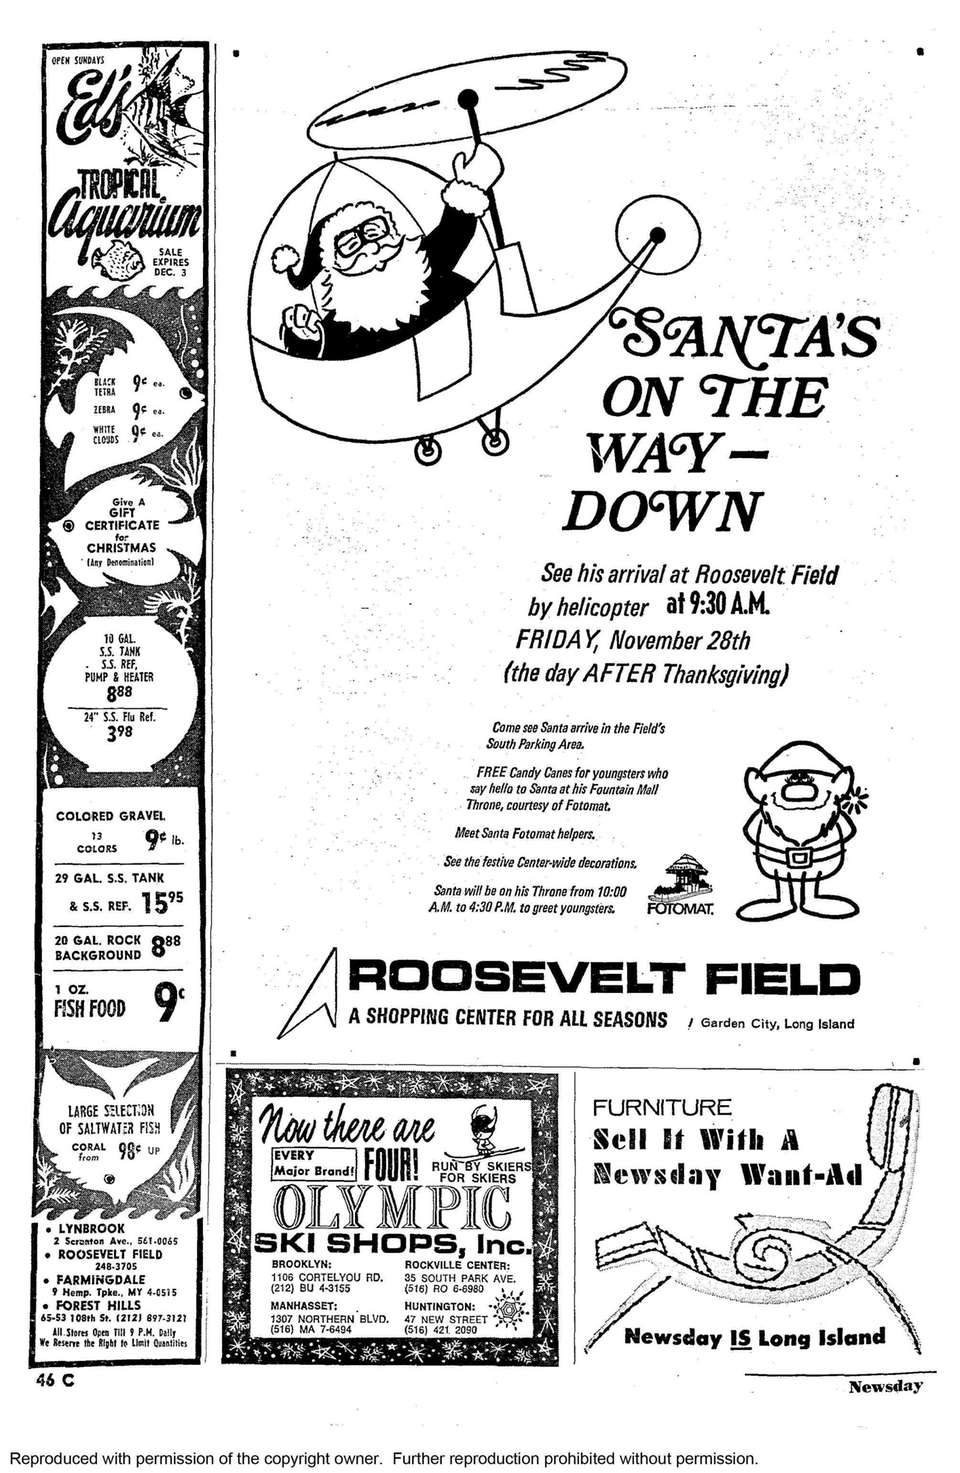 In 1969, Santa came to Roosevelt Field via